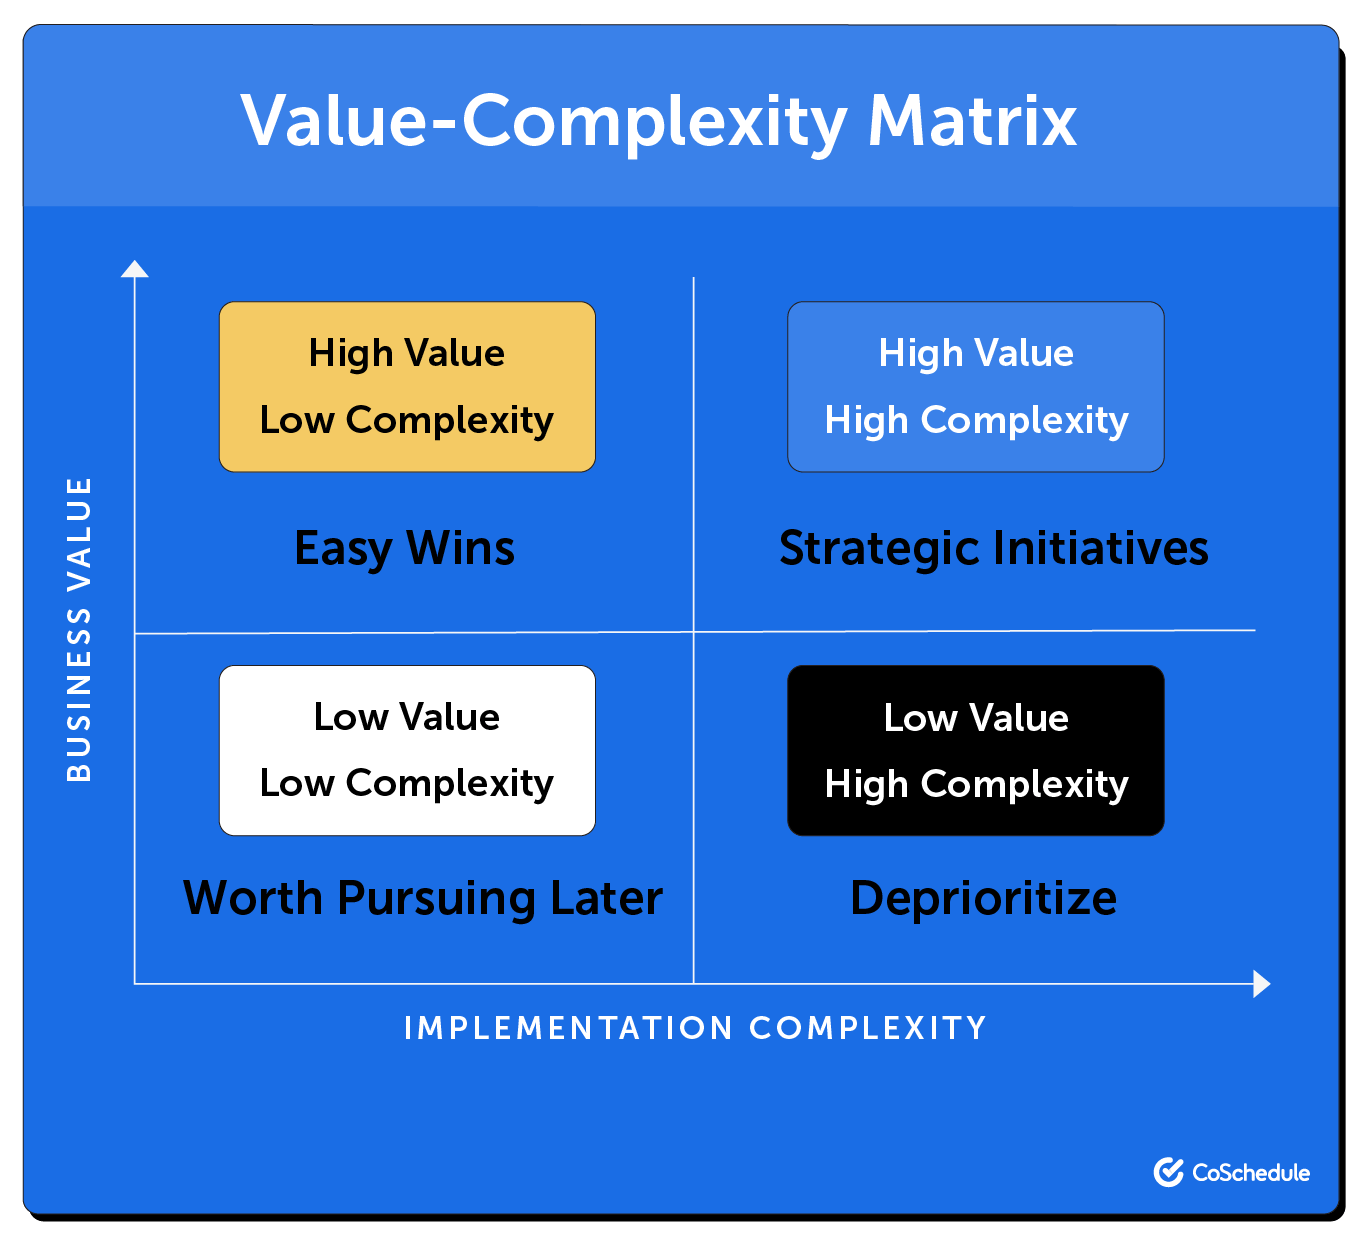 Quadrants of the value-complexity matrix.